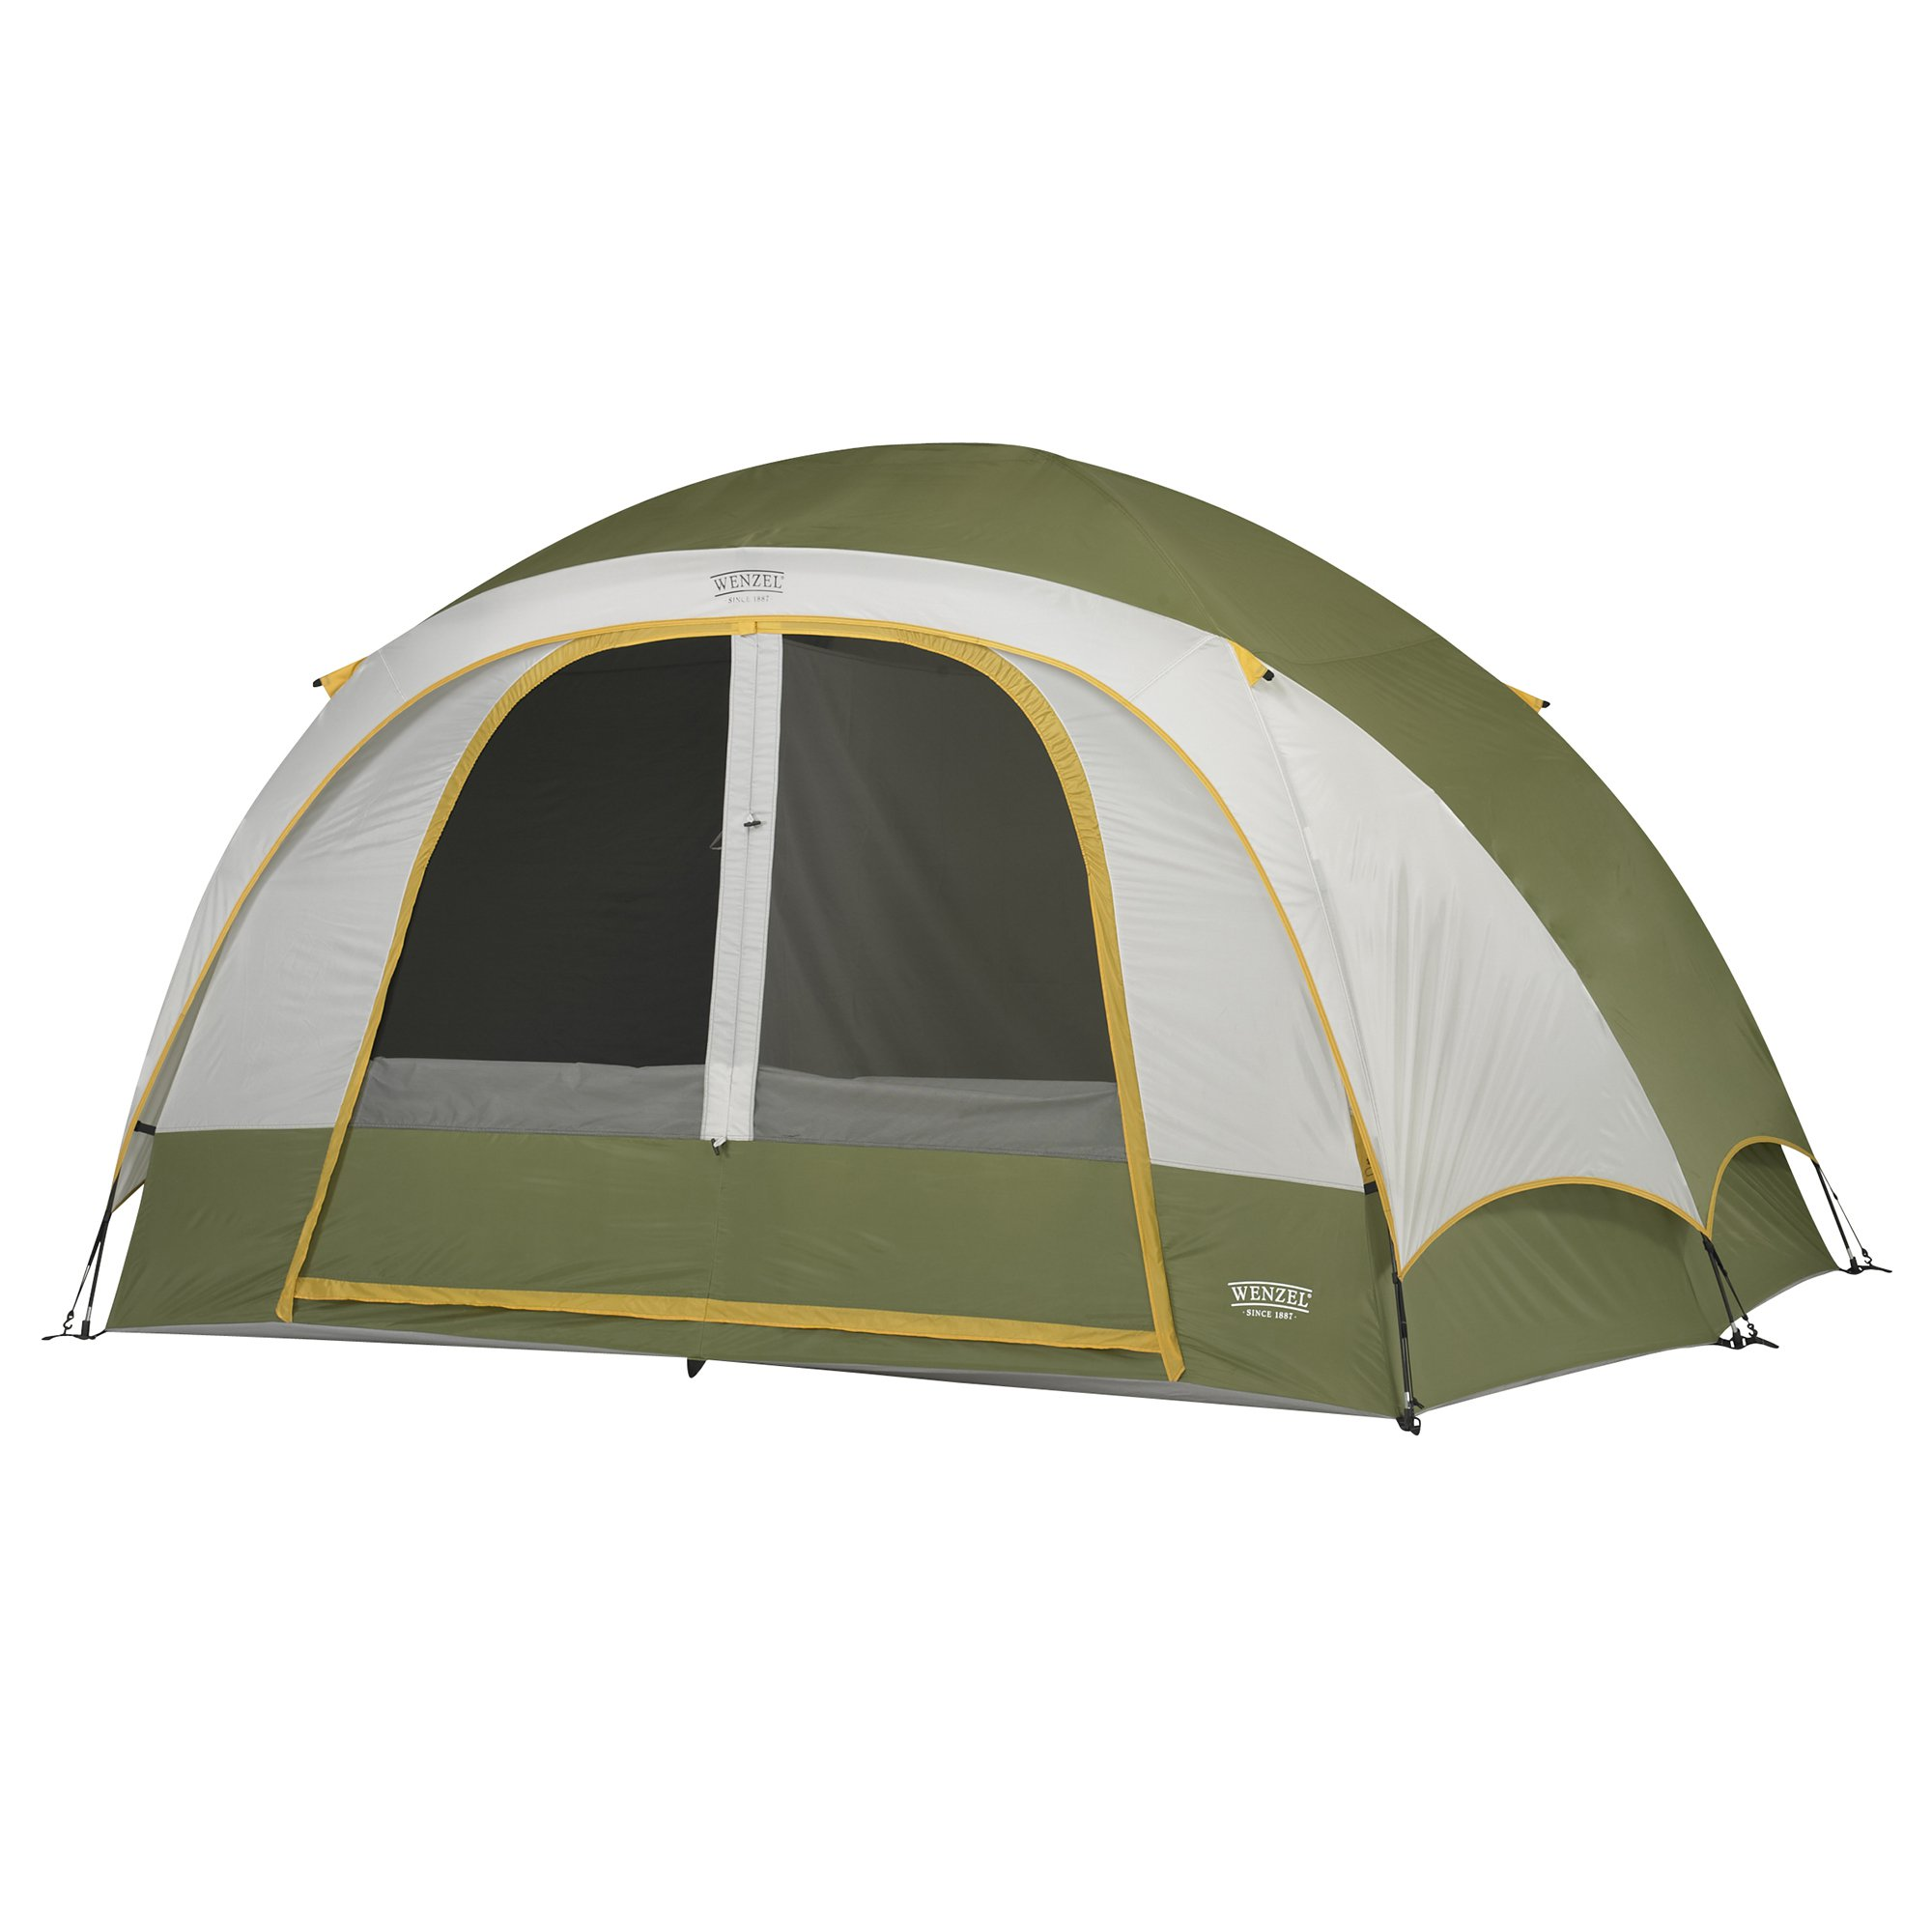 Wenzel Evergreen 11' x 9' Tent, Sleeps 6 by Wenzel